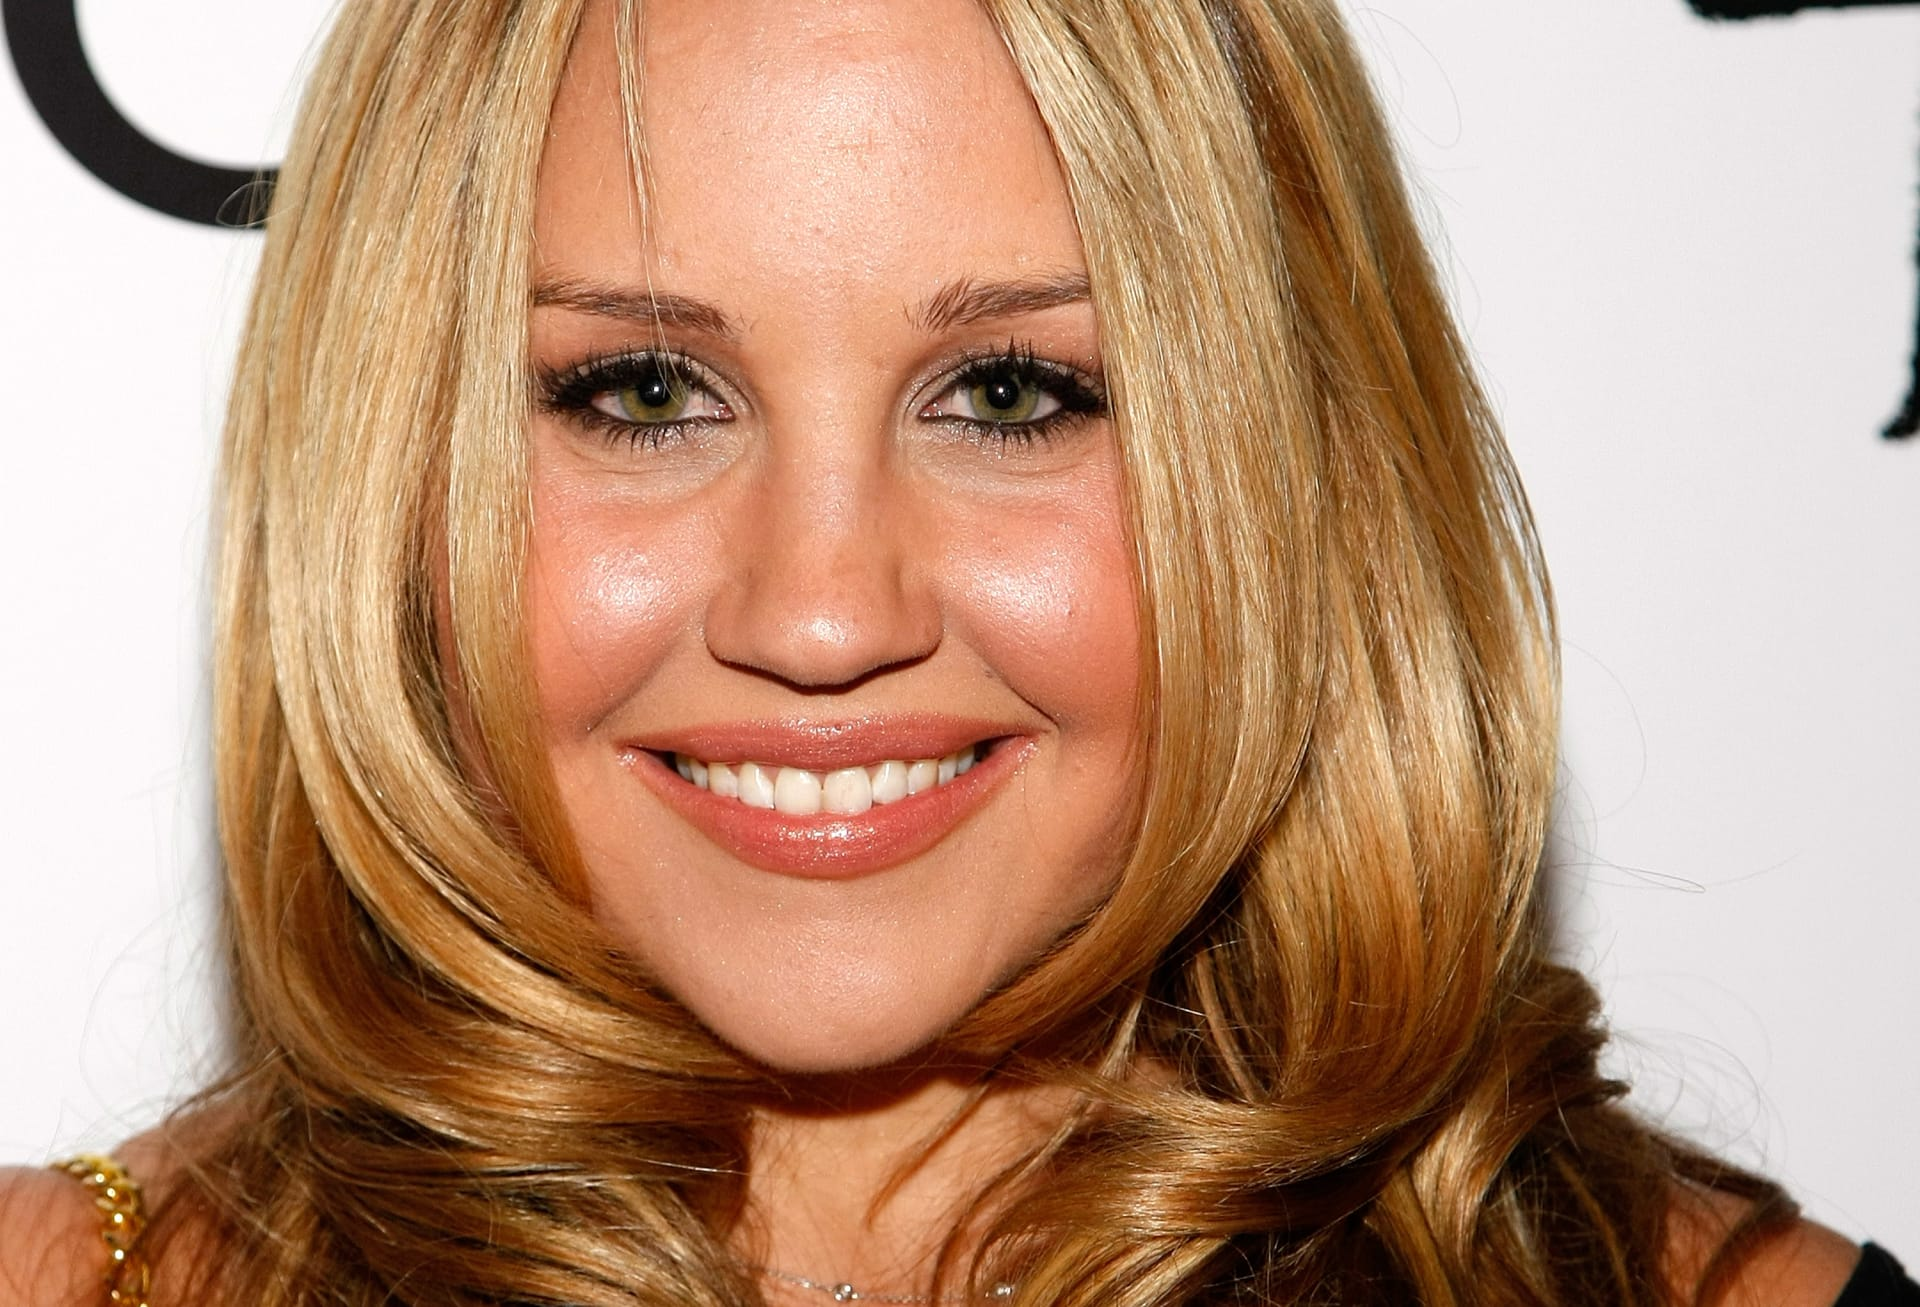 Amanda Bynes Nude Videos the amanda bynes breakdown story | complex